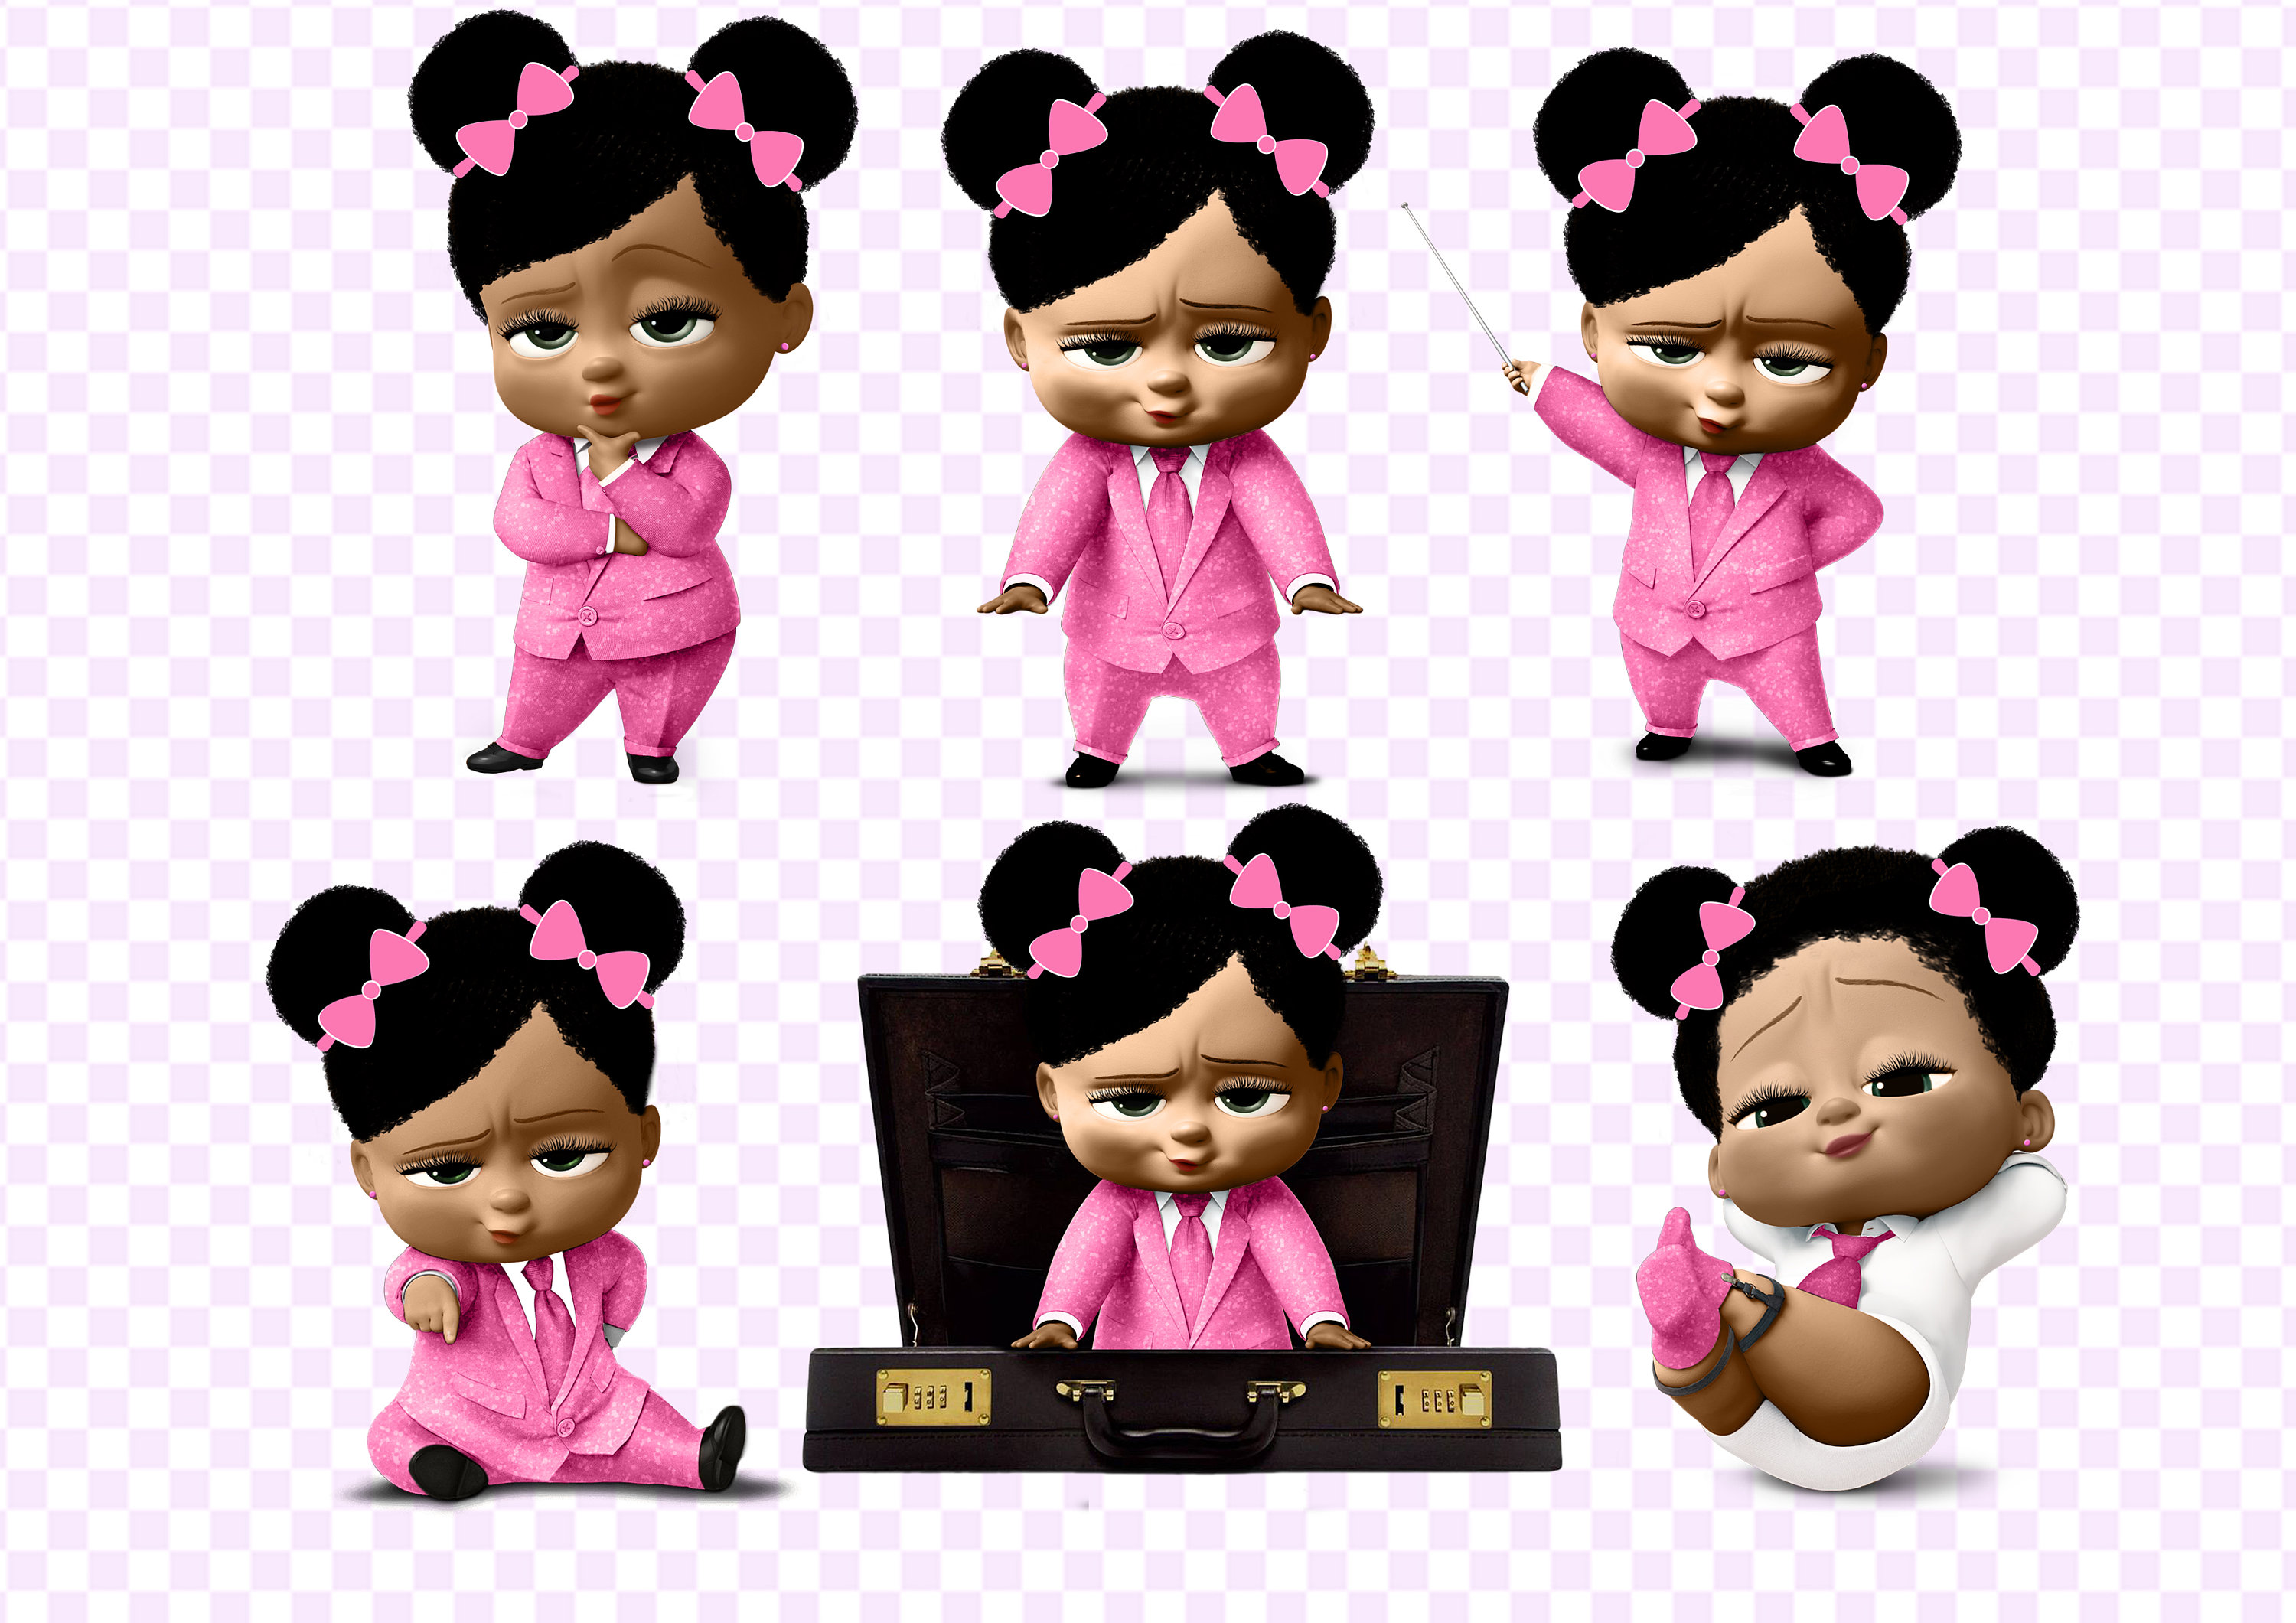 African American Boss Baby Girl PNG 300 dpi, 9 cut images on transparent  background African American Girl Boss Baby.